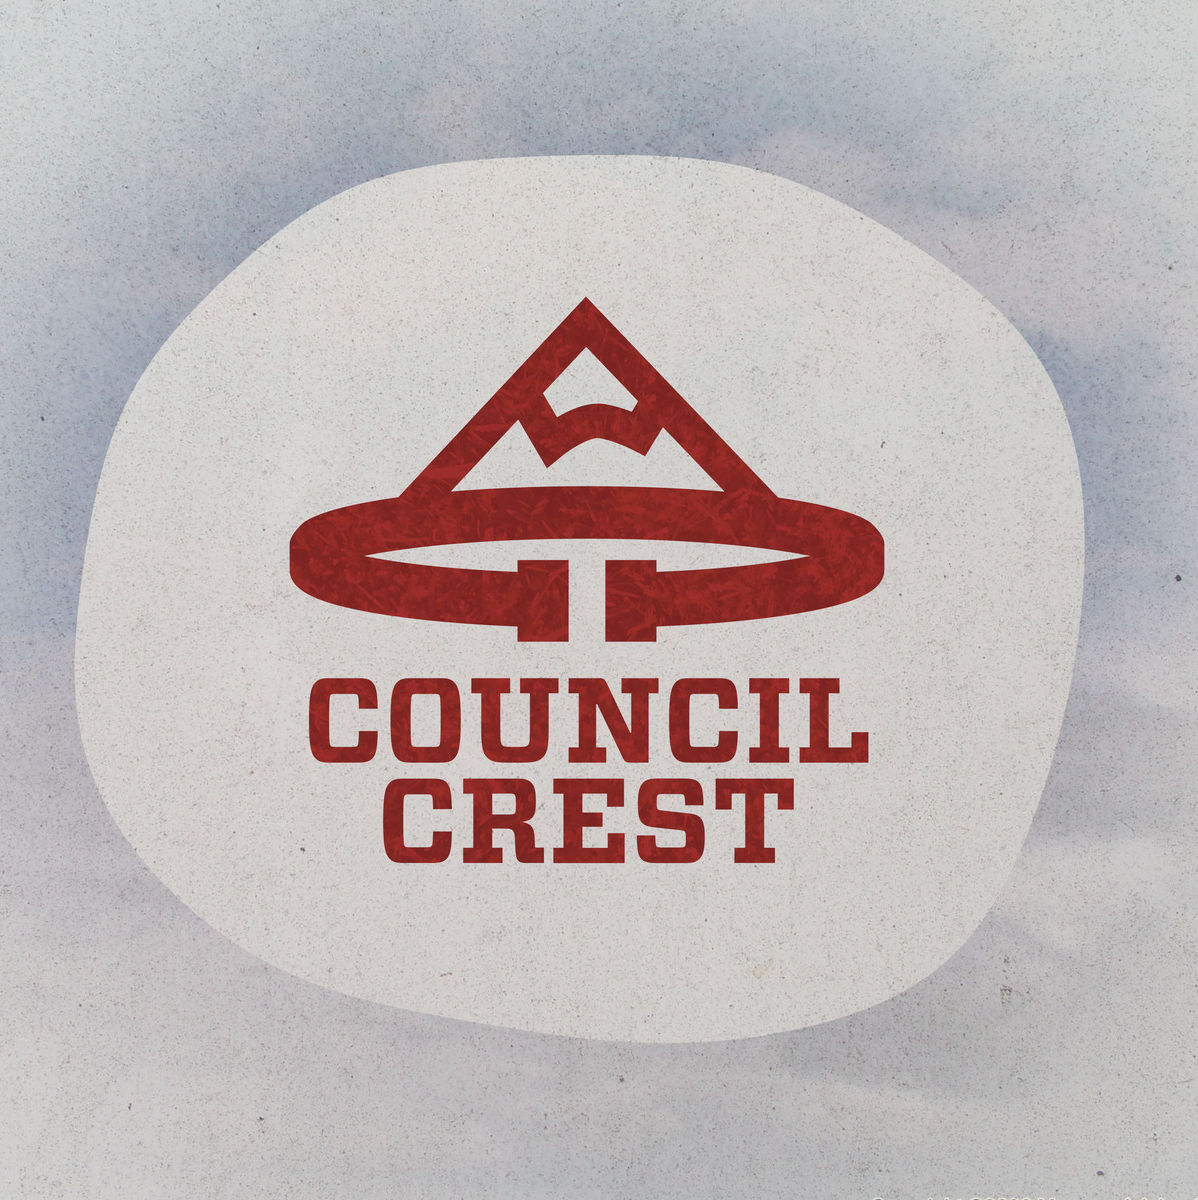 031 councilcrest iqqn2f